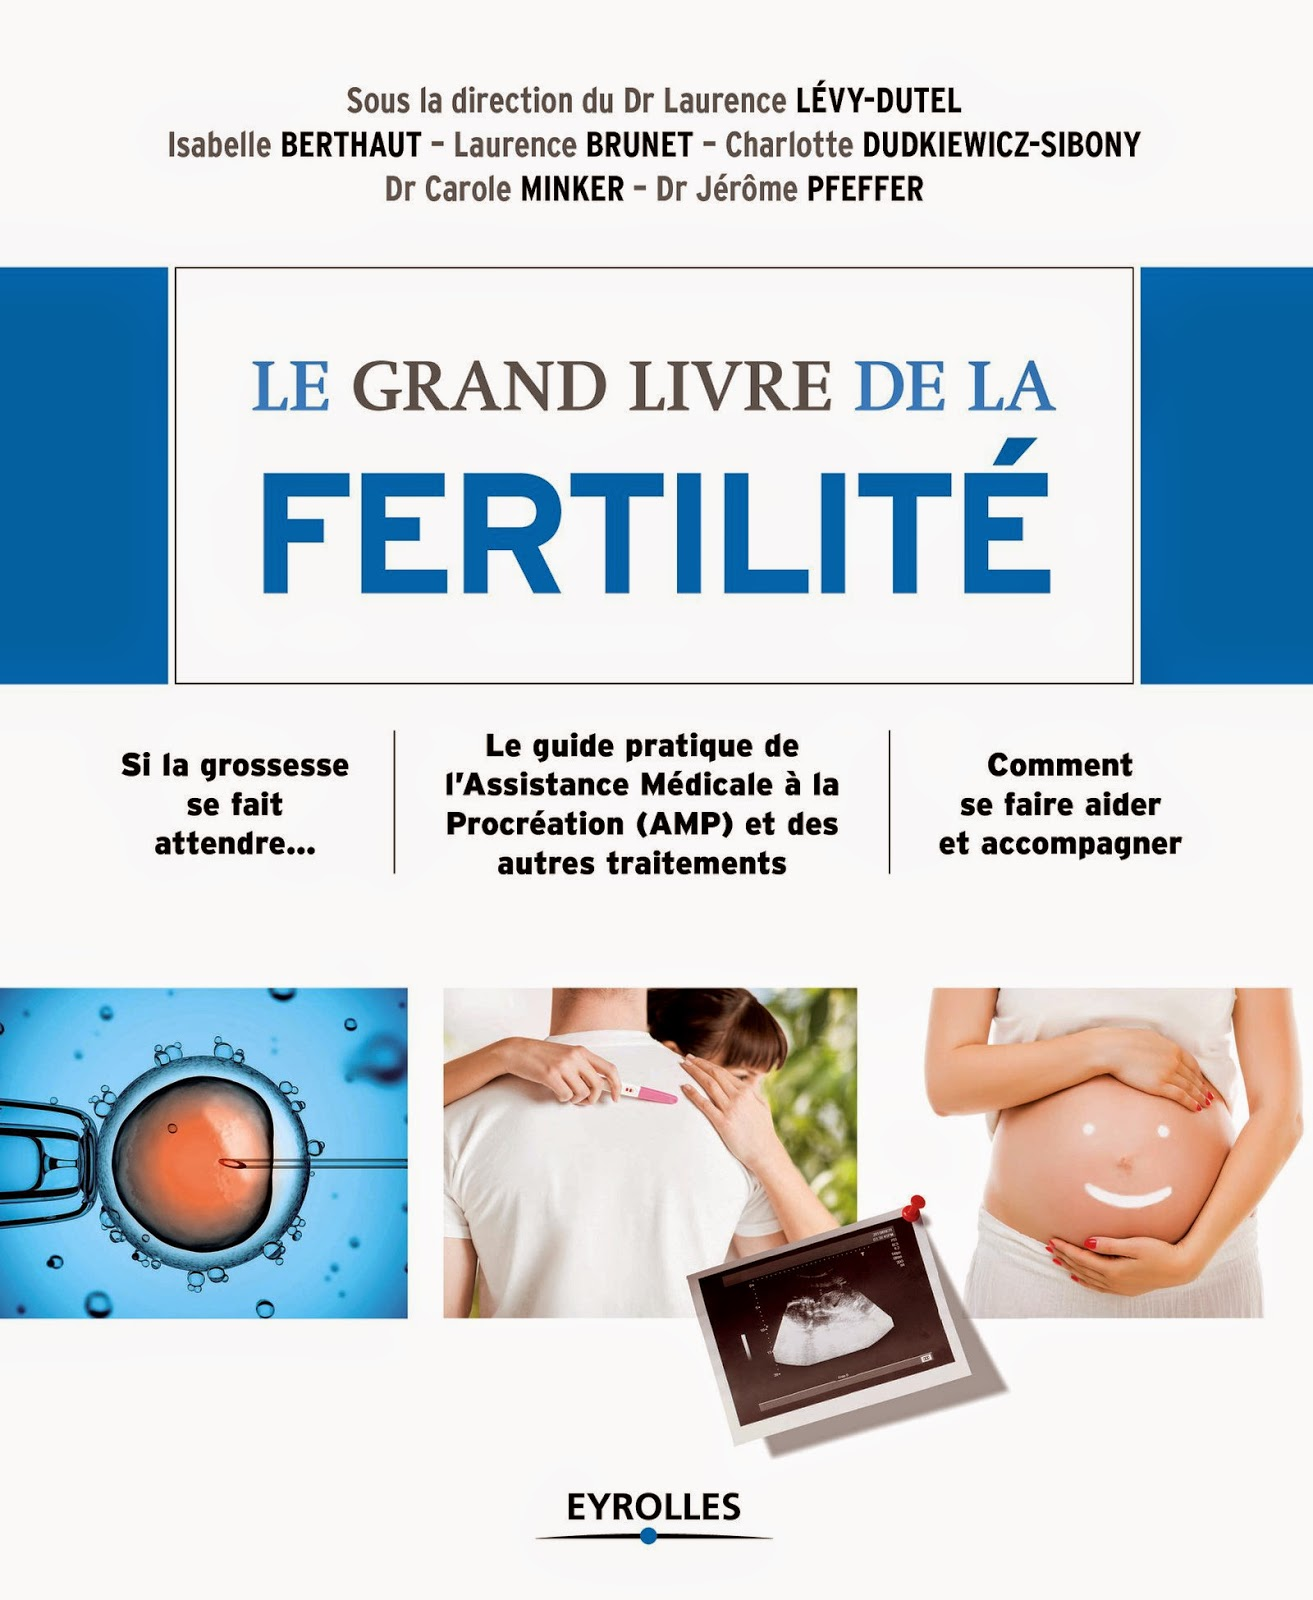 www.amazon.fr/grand-livre-fertilité-Laurence-Lévy-Dutel/dp/2212559593/ref=sr_1_1?ie=UTF8&qid=1422795350&sr=8-1&